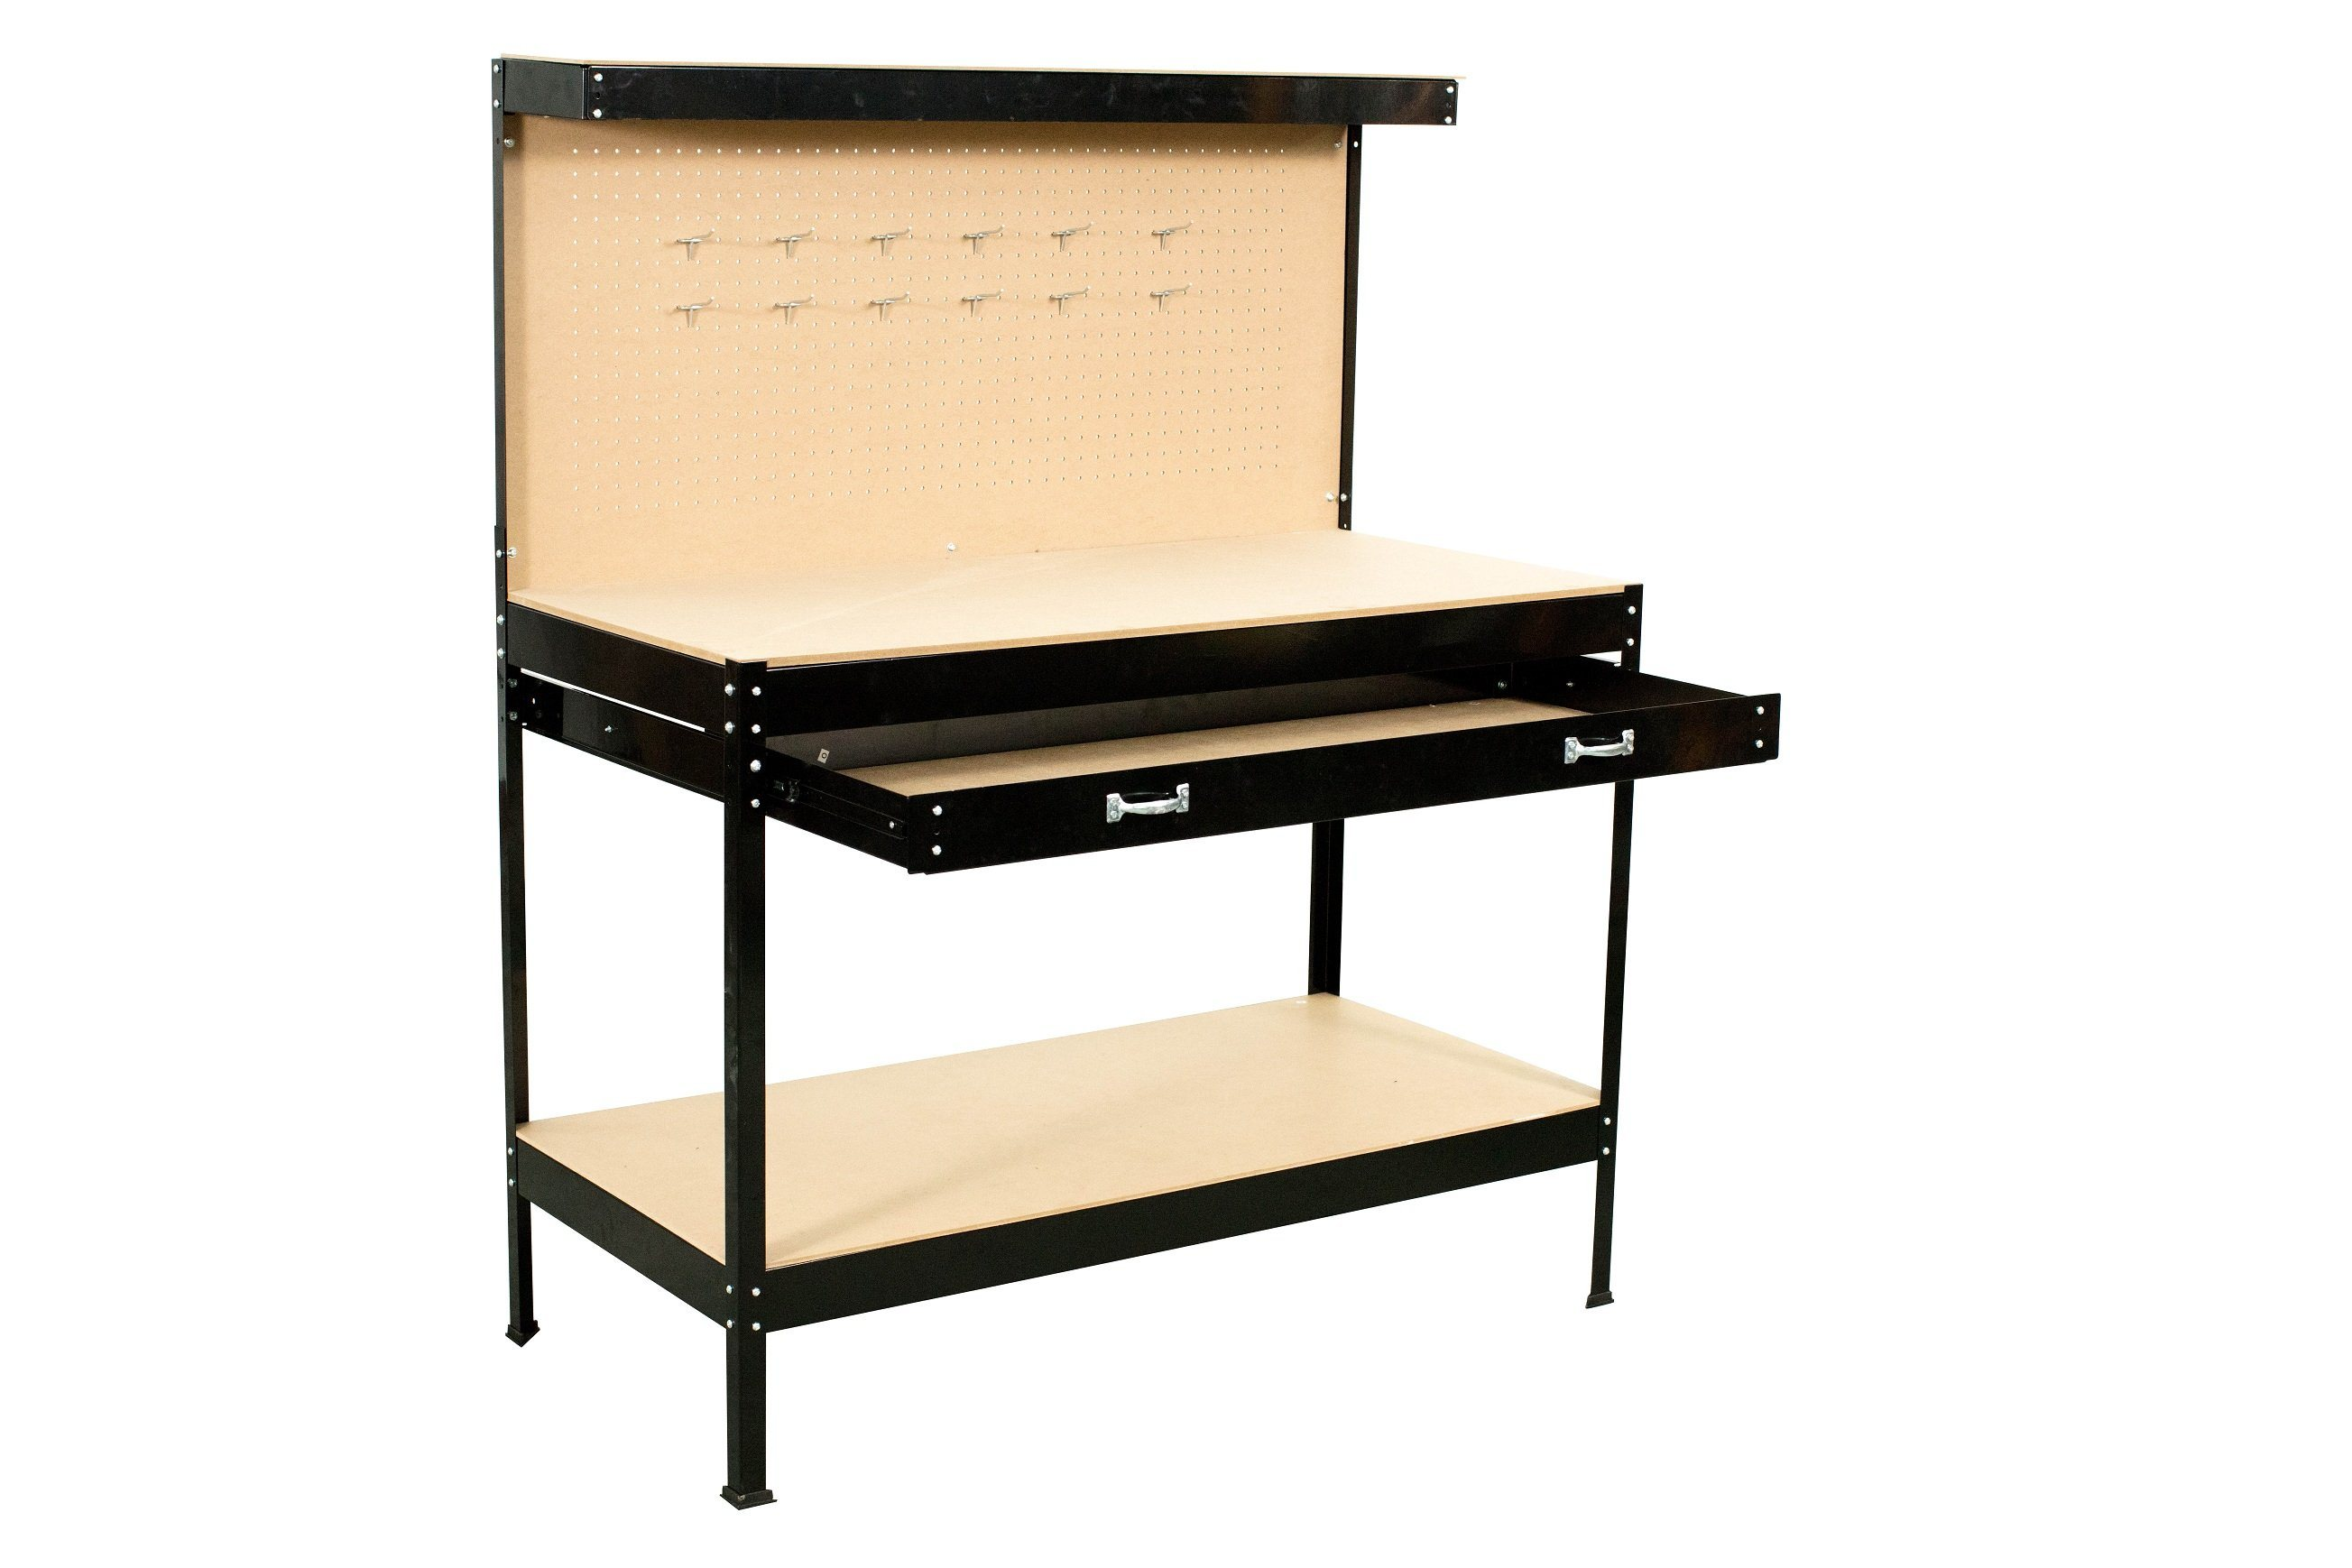 Sensational Hot Item Heavy Duty Workbench With Single Large Drawer Wb005 Ocoug Best Dining Table And Chair Ideas Images Ocougorg